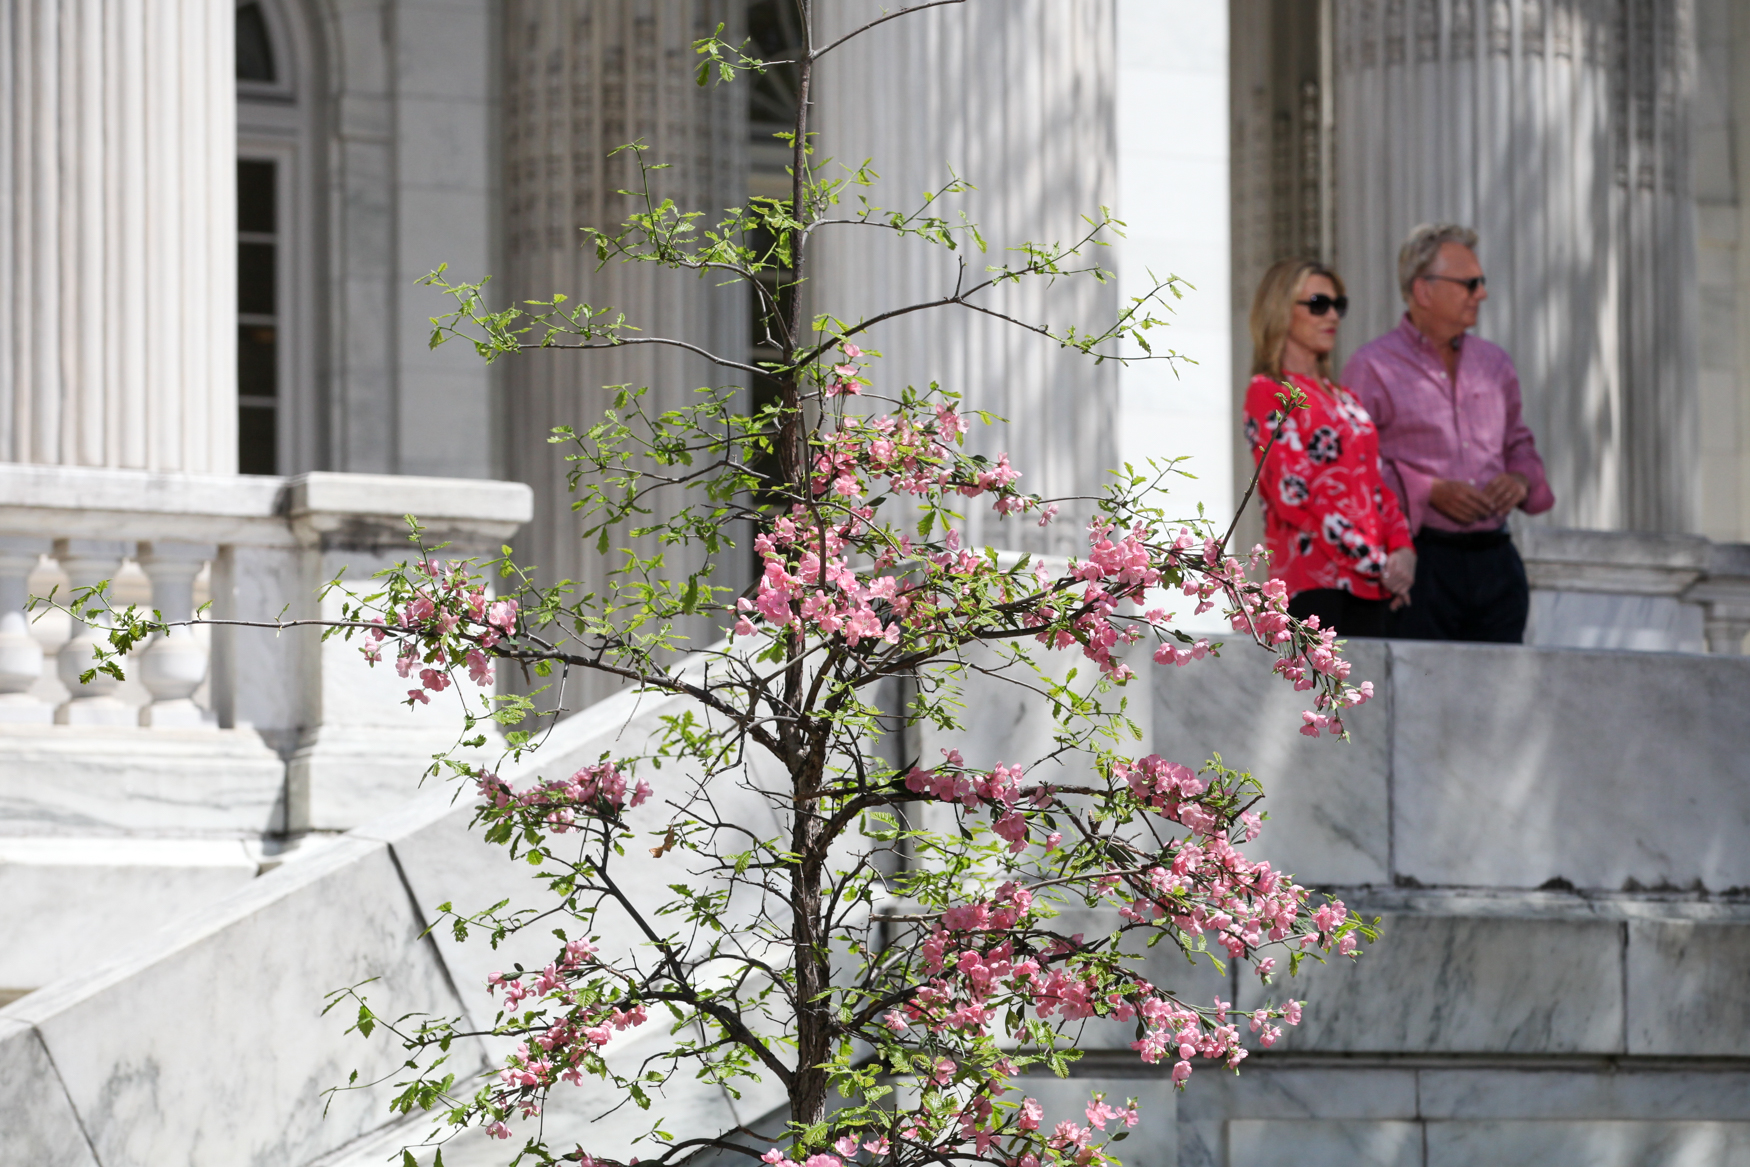 A fake tree full of cherry blossoms helps set the D.C. stage. (Photo by DC Refined)